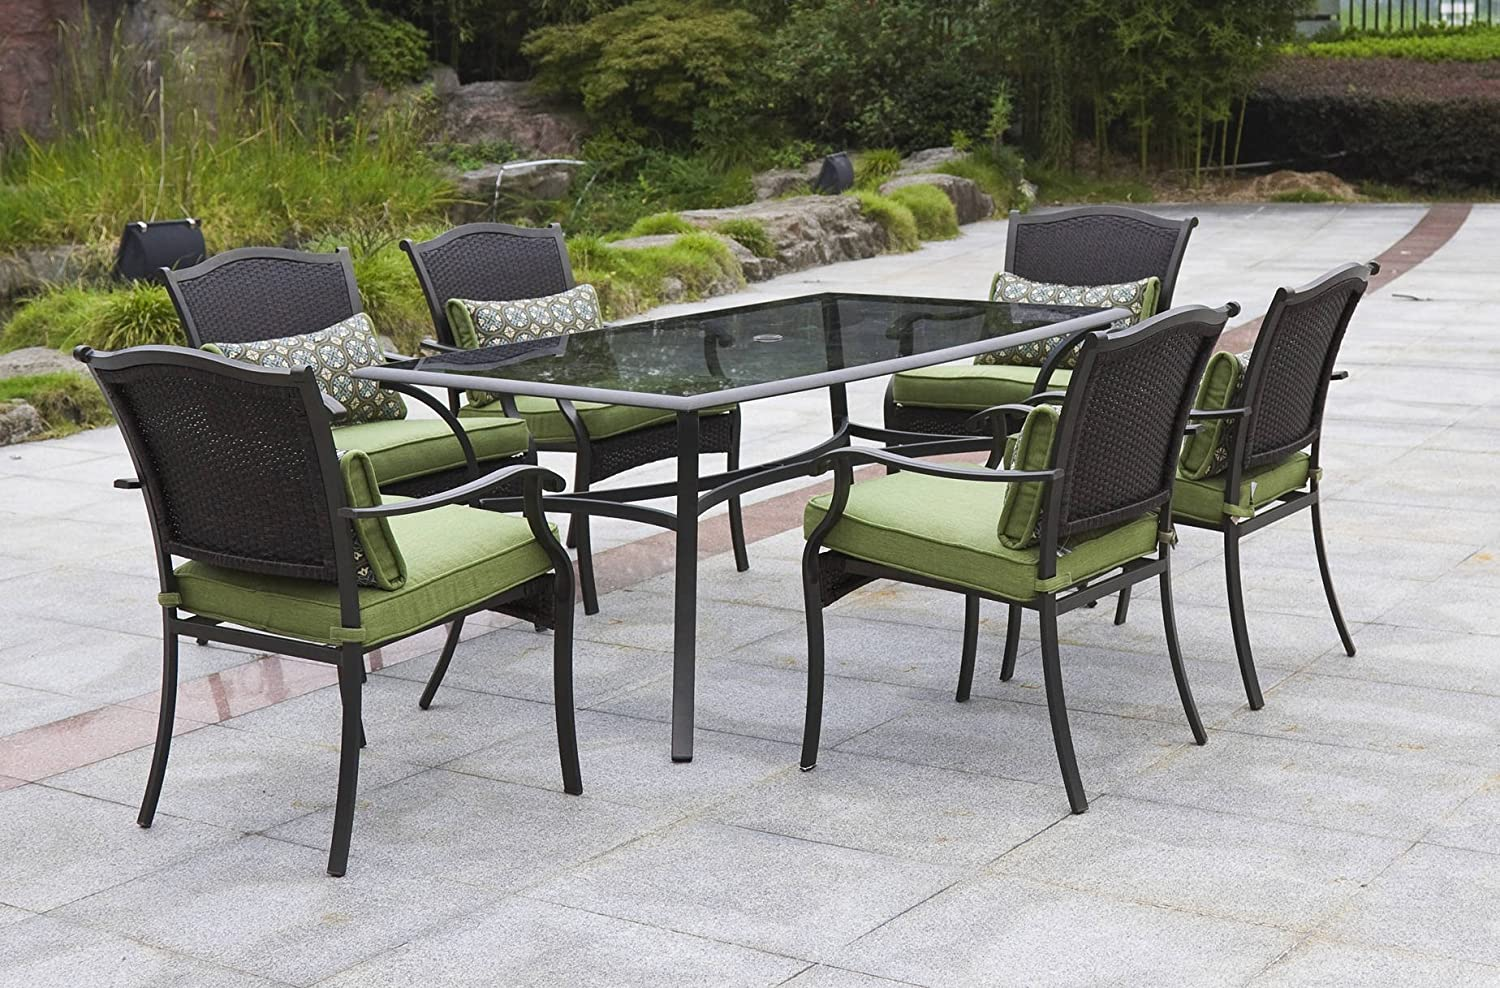 pl deco sunbrella frame sets set rst plastic shop patio outdoors slate dining with lowes brands piece at com furniture brown grey